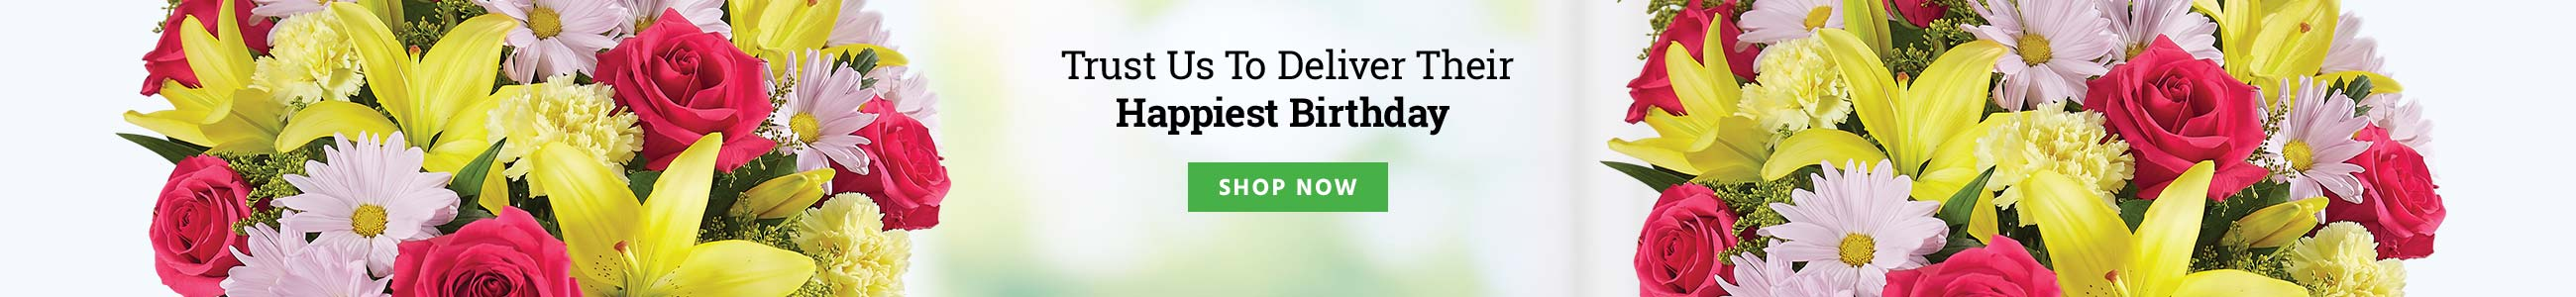 Trust Us To Deliver Their Happiest Birthday